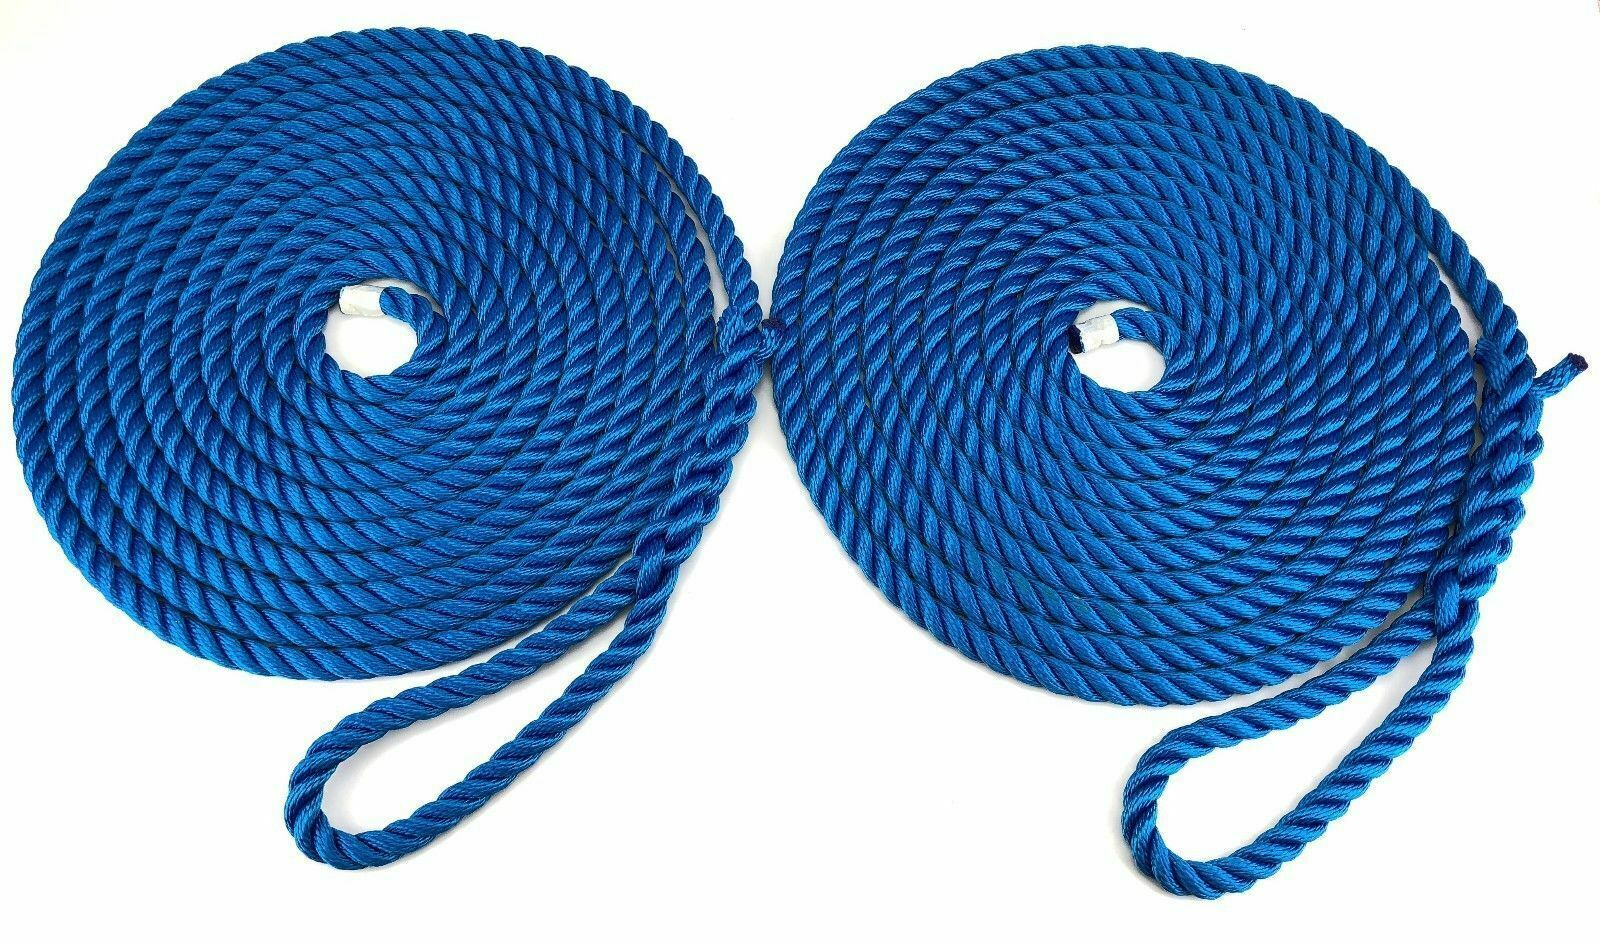 10mm-FLOATING-MOORING-ROPES--EYE-SPLICED-3-STRAND-ROYAL blueE IN PAIRS X 16MTS